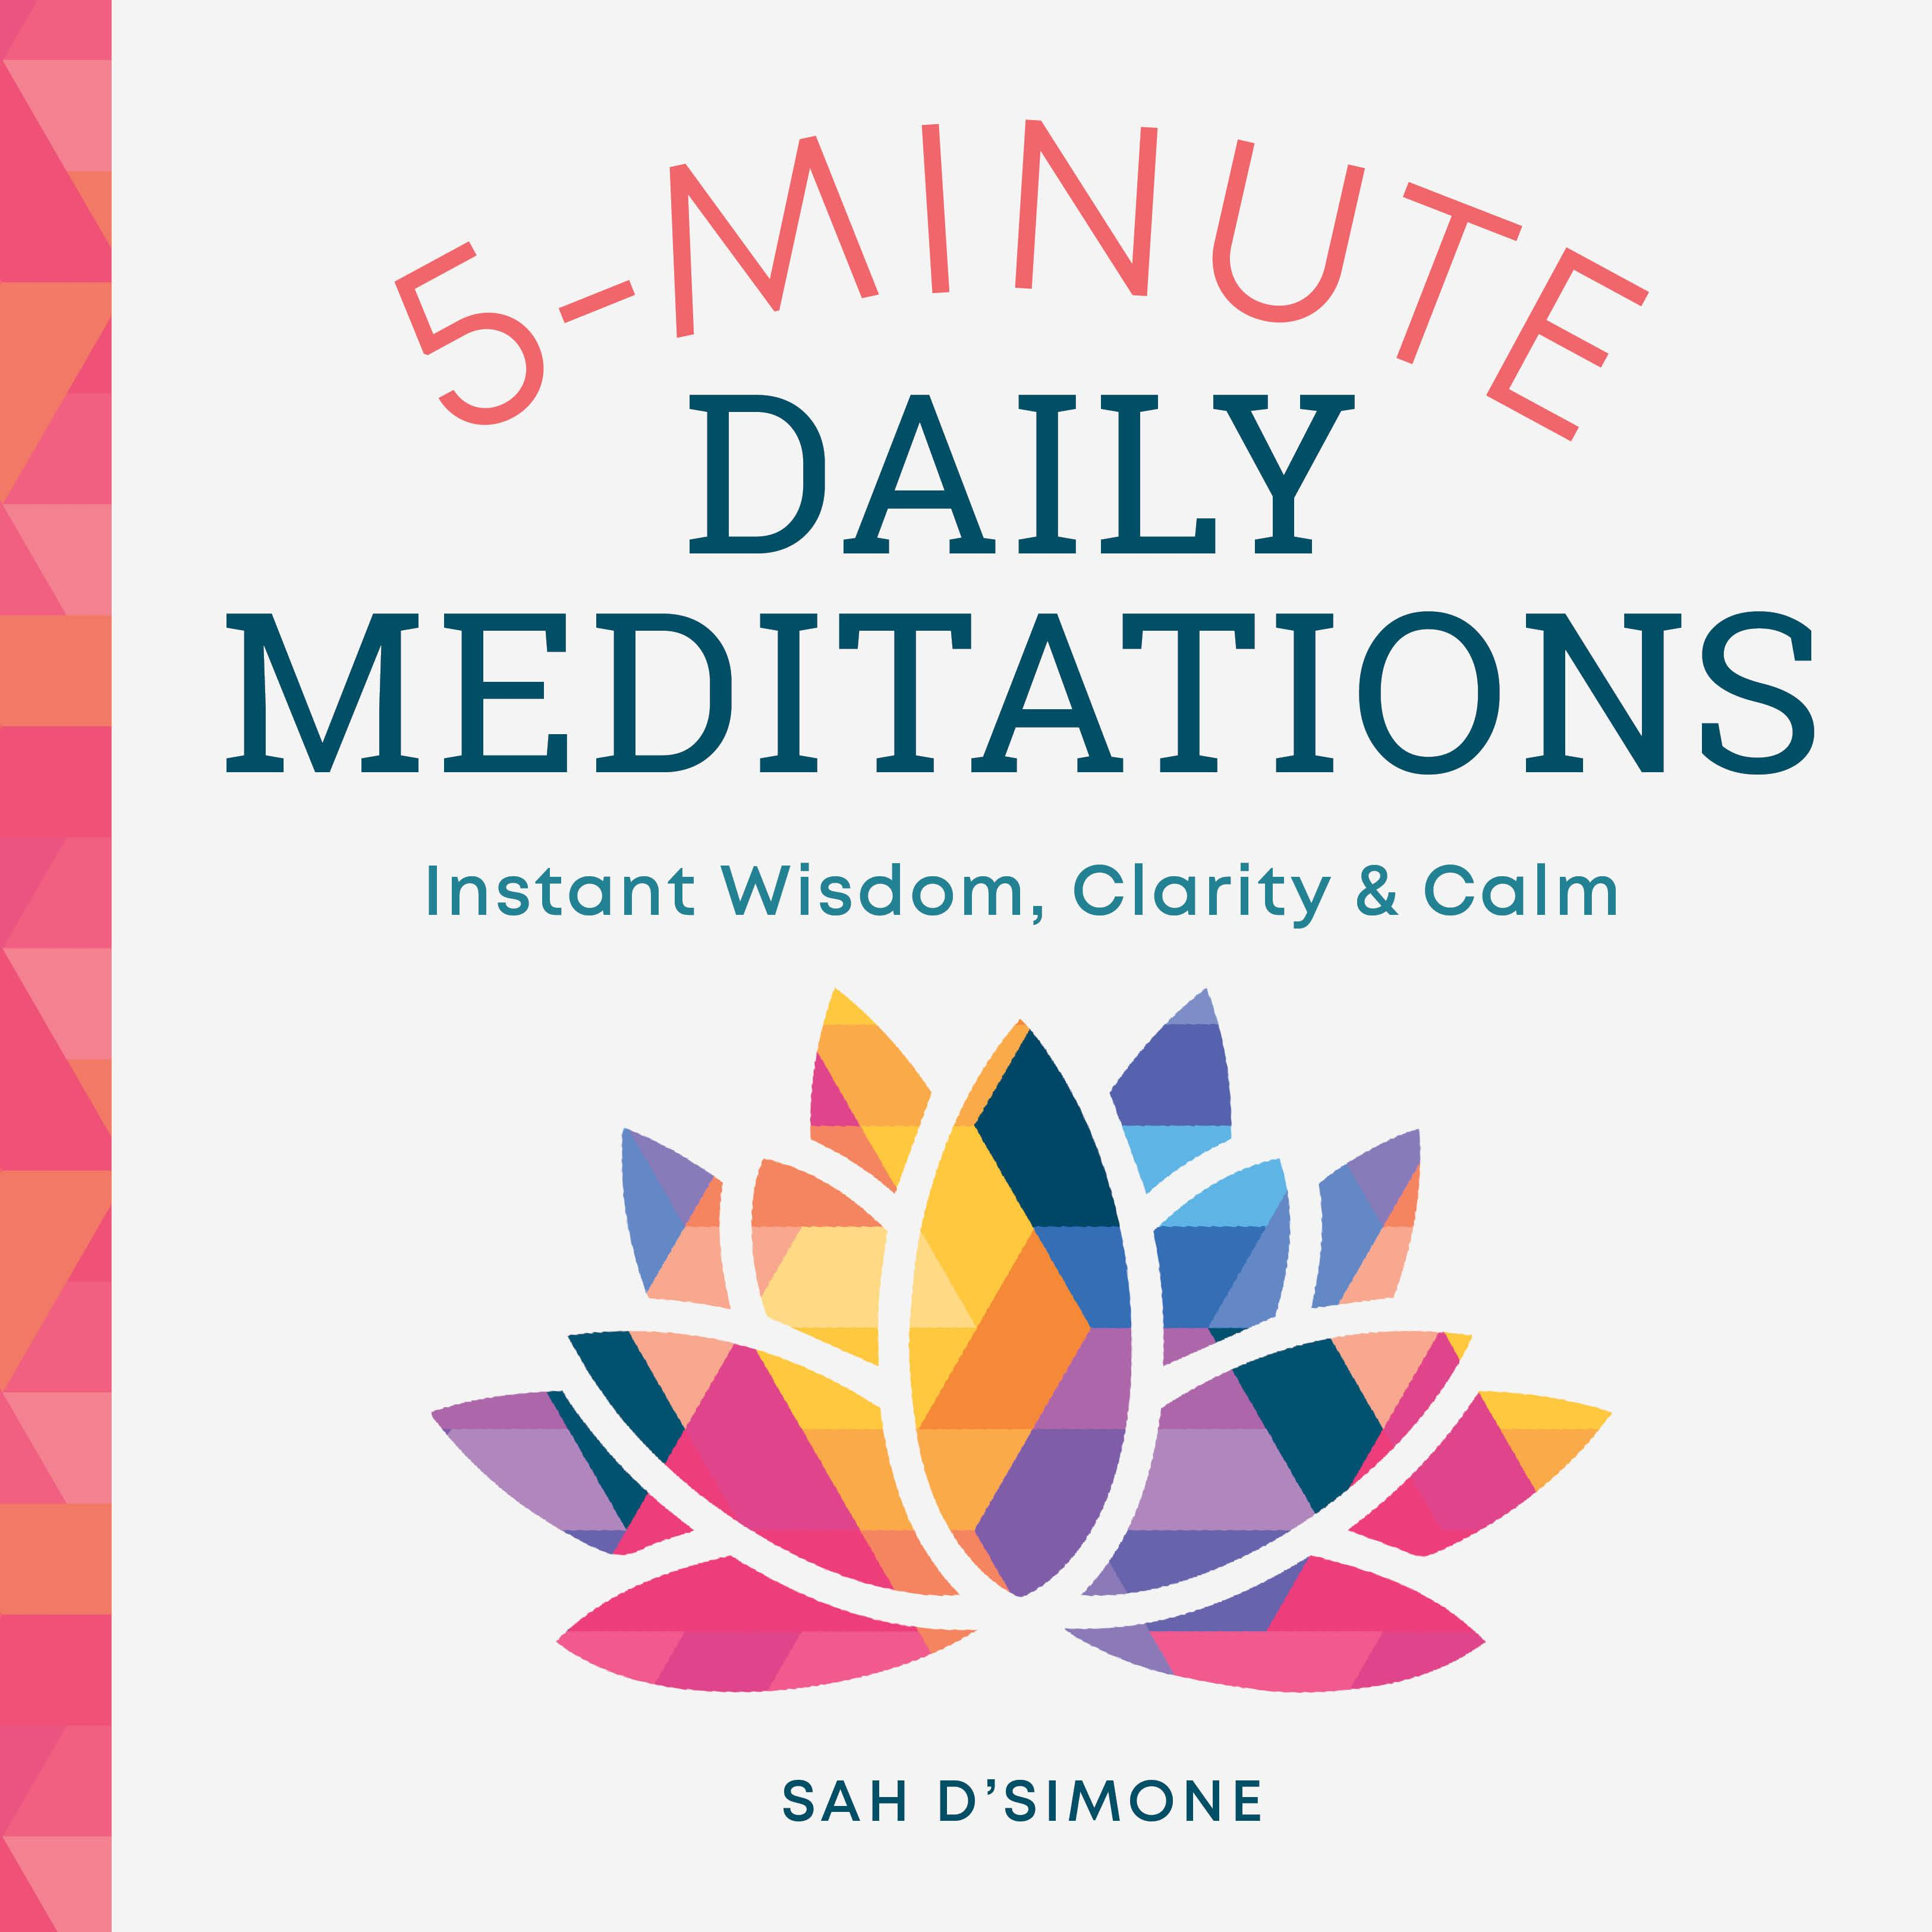 5-Minute Daily Meditations : Instant Wisdom, Clarity, and Calm